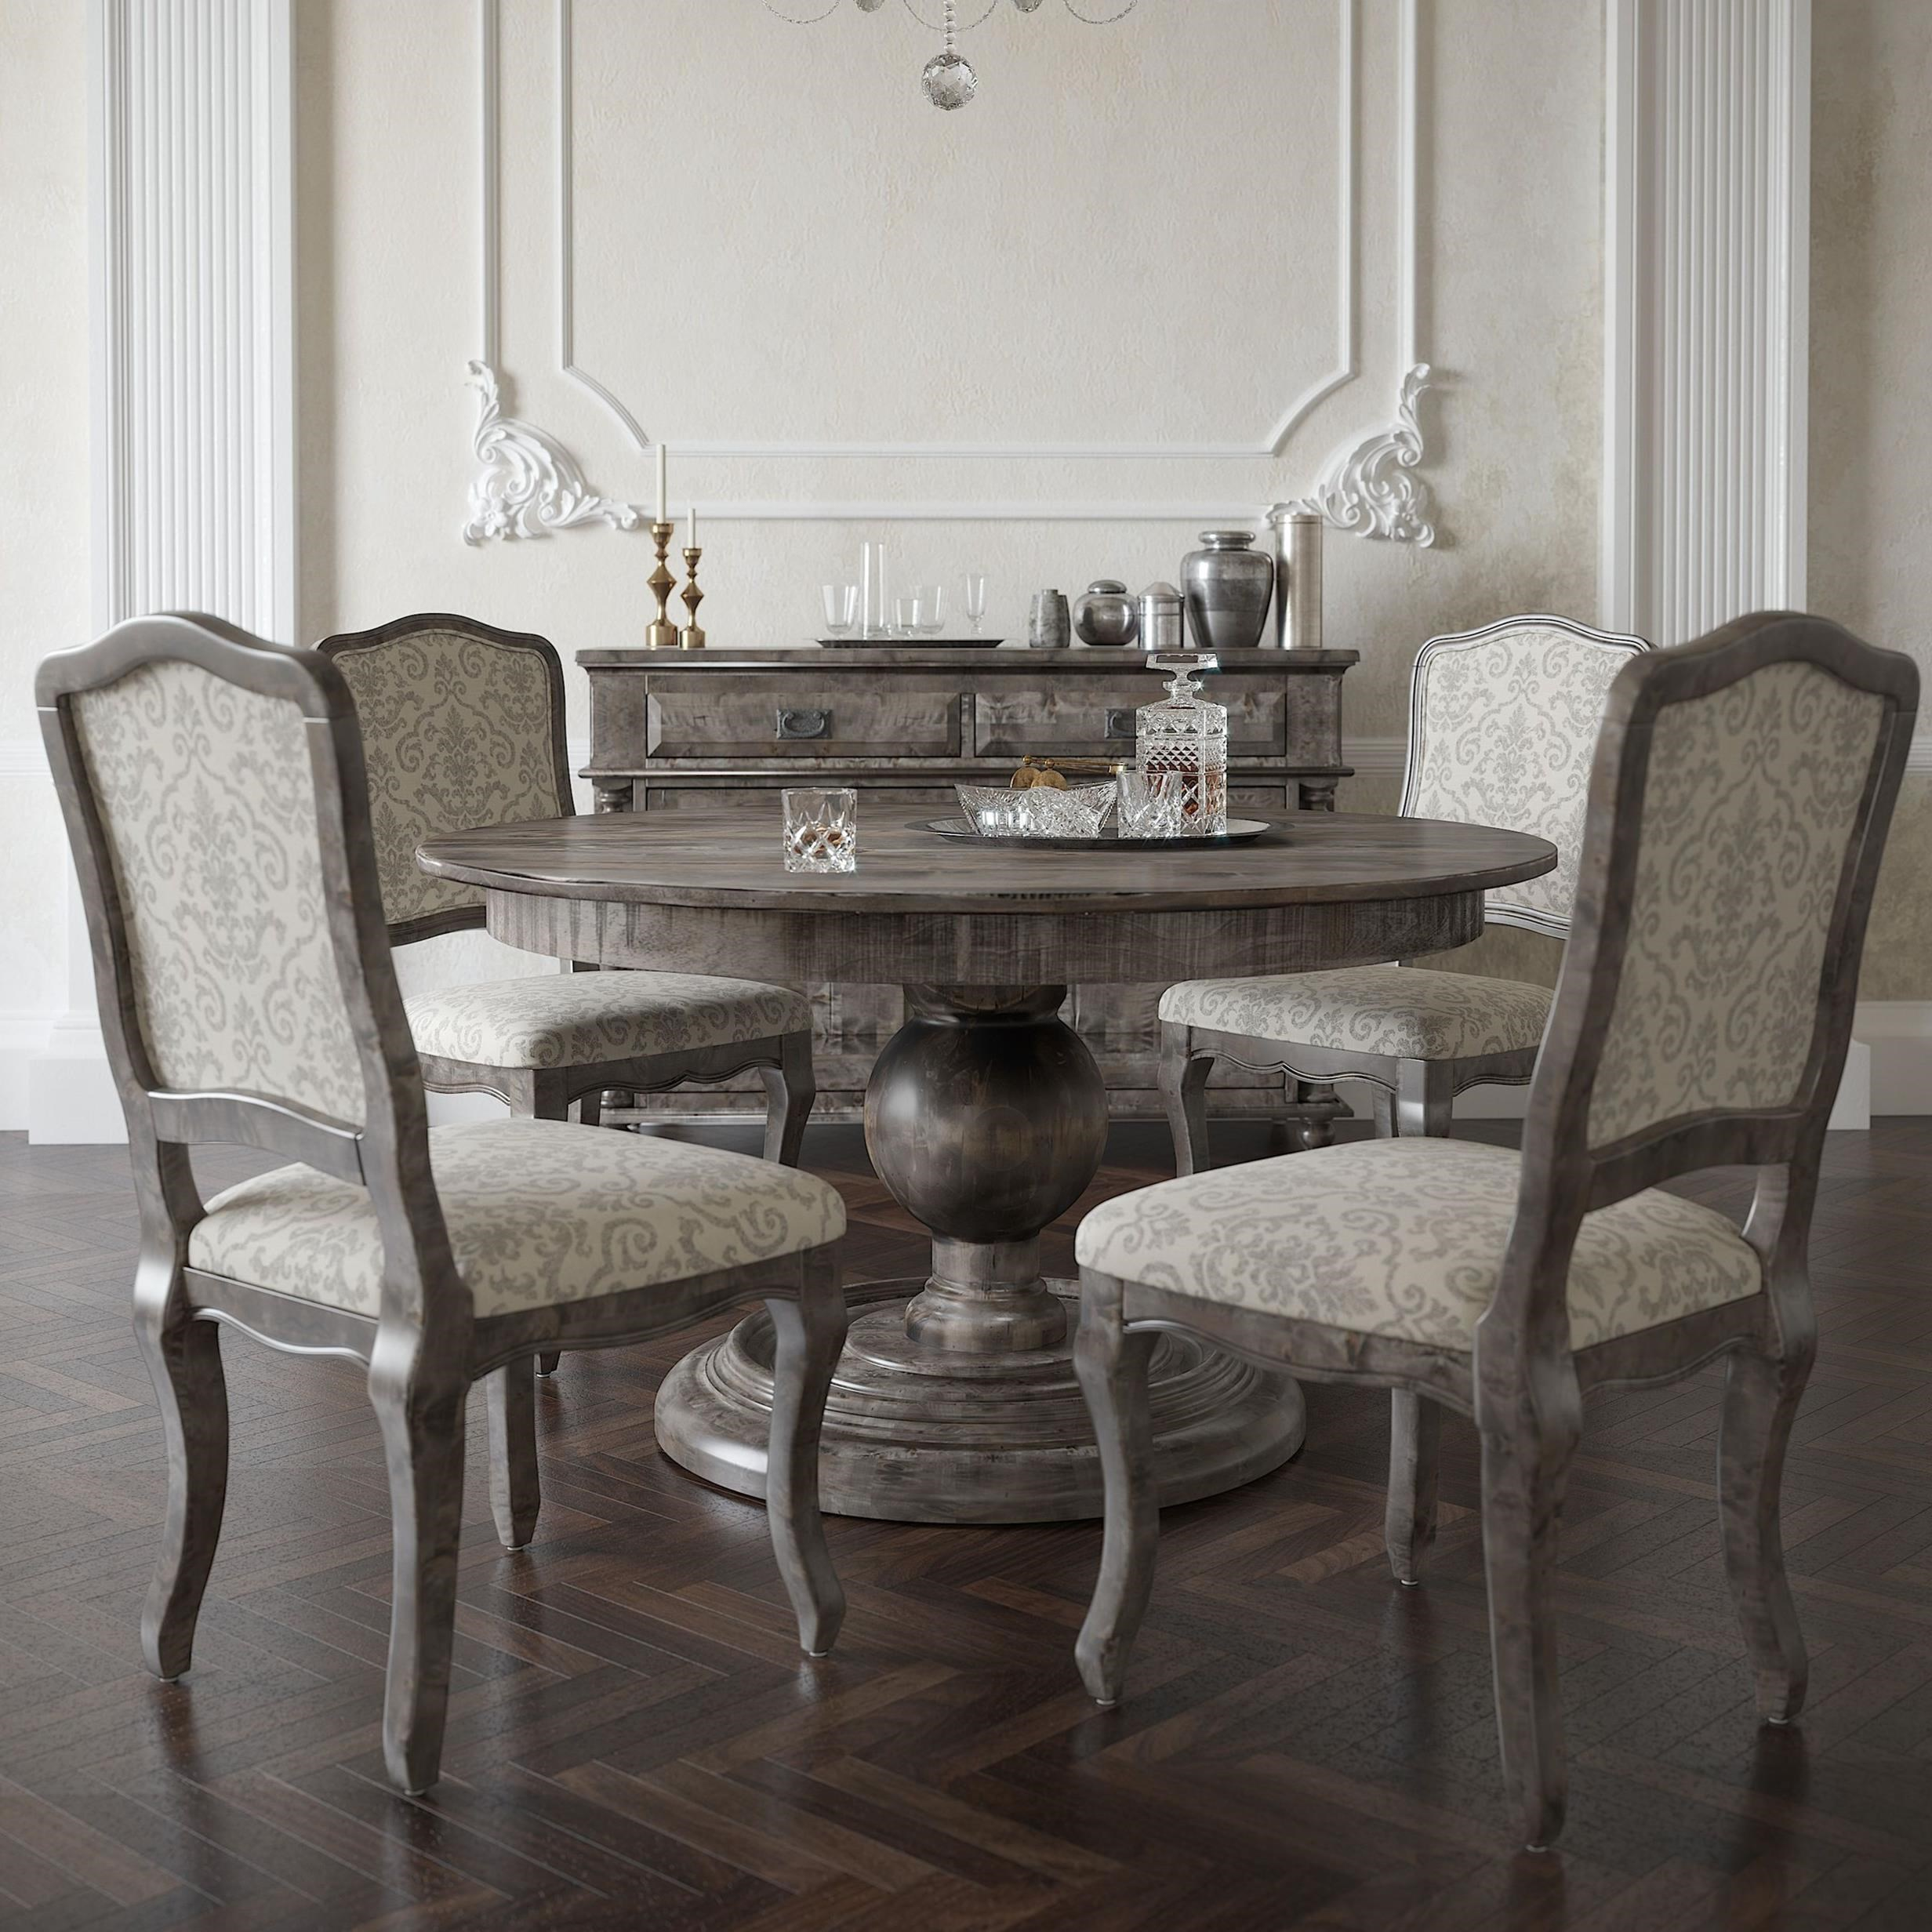 Champlain - Custom Dining Customizable Round Dining Table Set by Canadel at Jordan's Home Furnishings